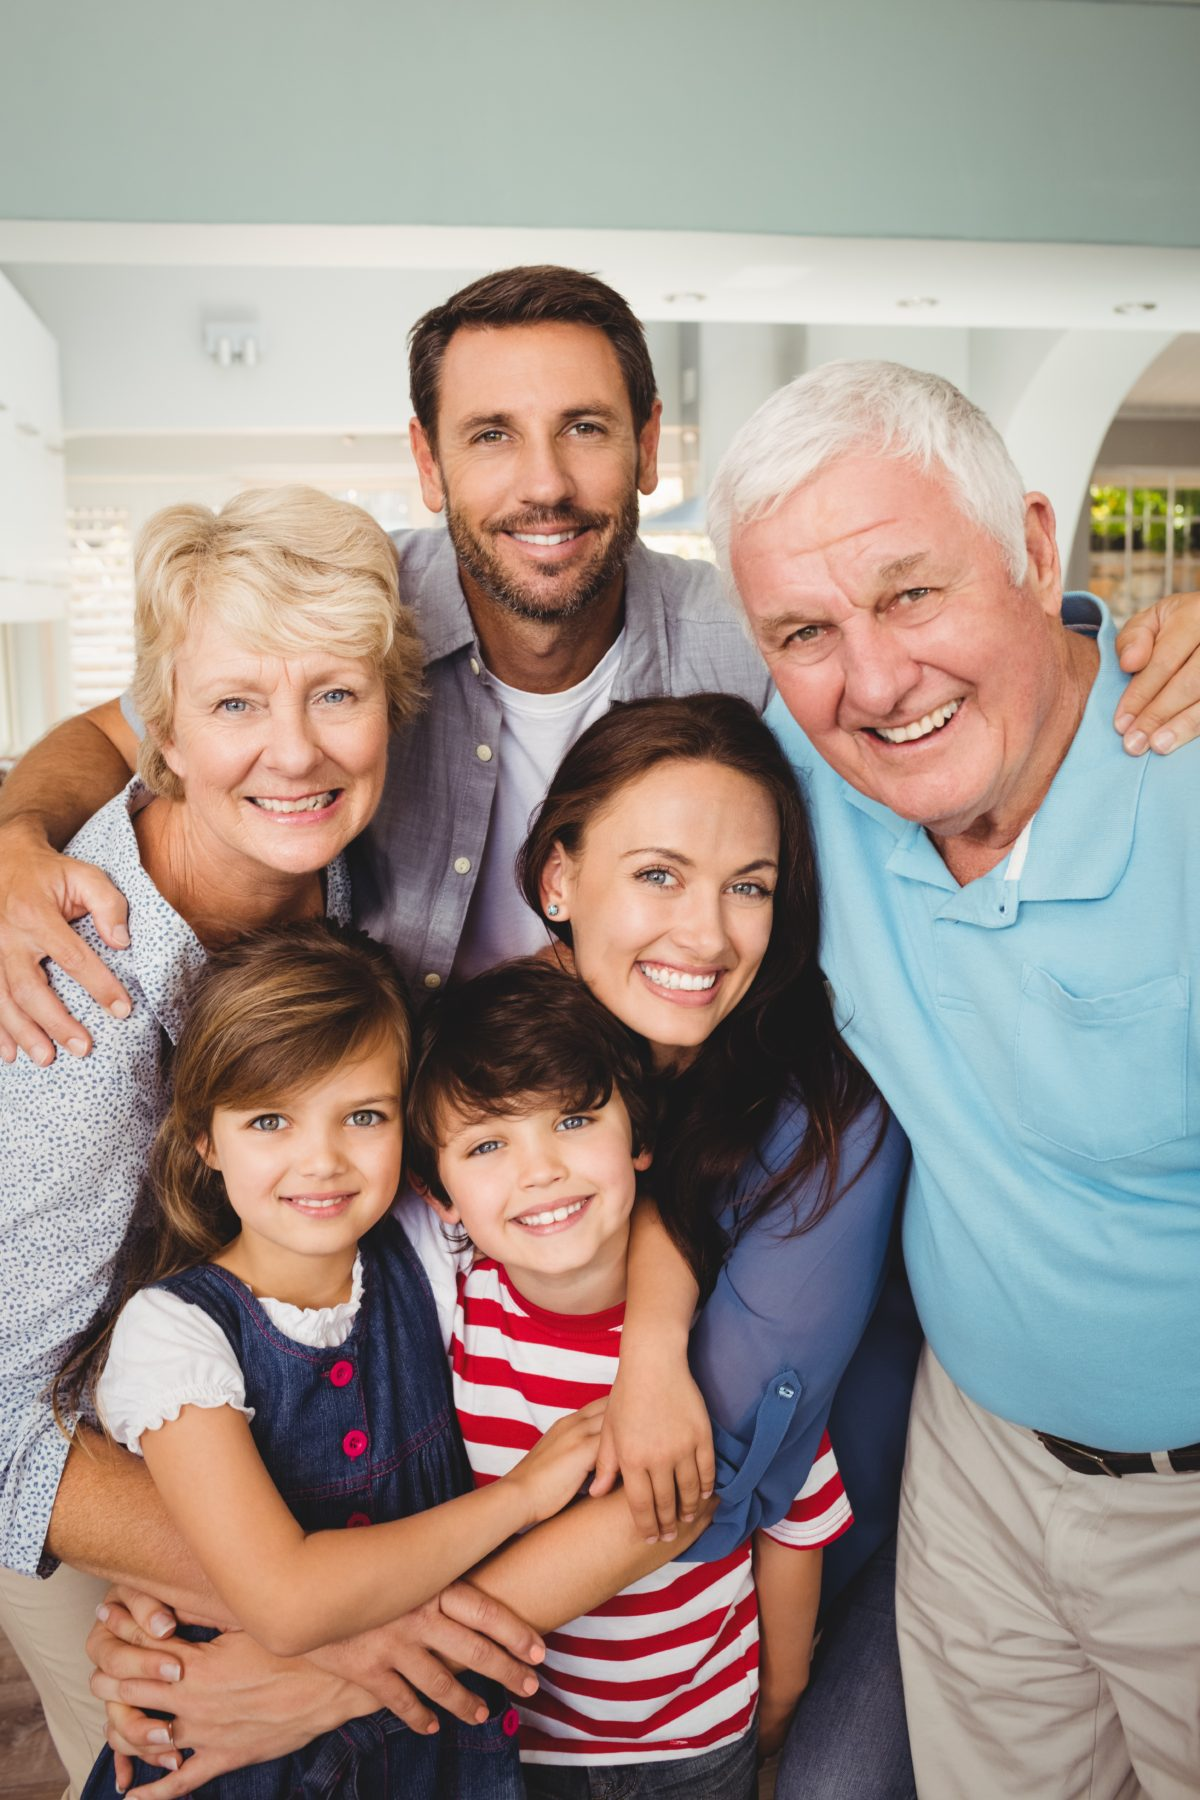 Are you worried about the safety of your elderly parents? Wiser Home Care Services can custom tailor the amount of home care to meet your specific needs.